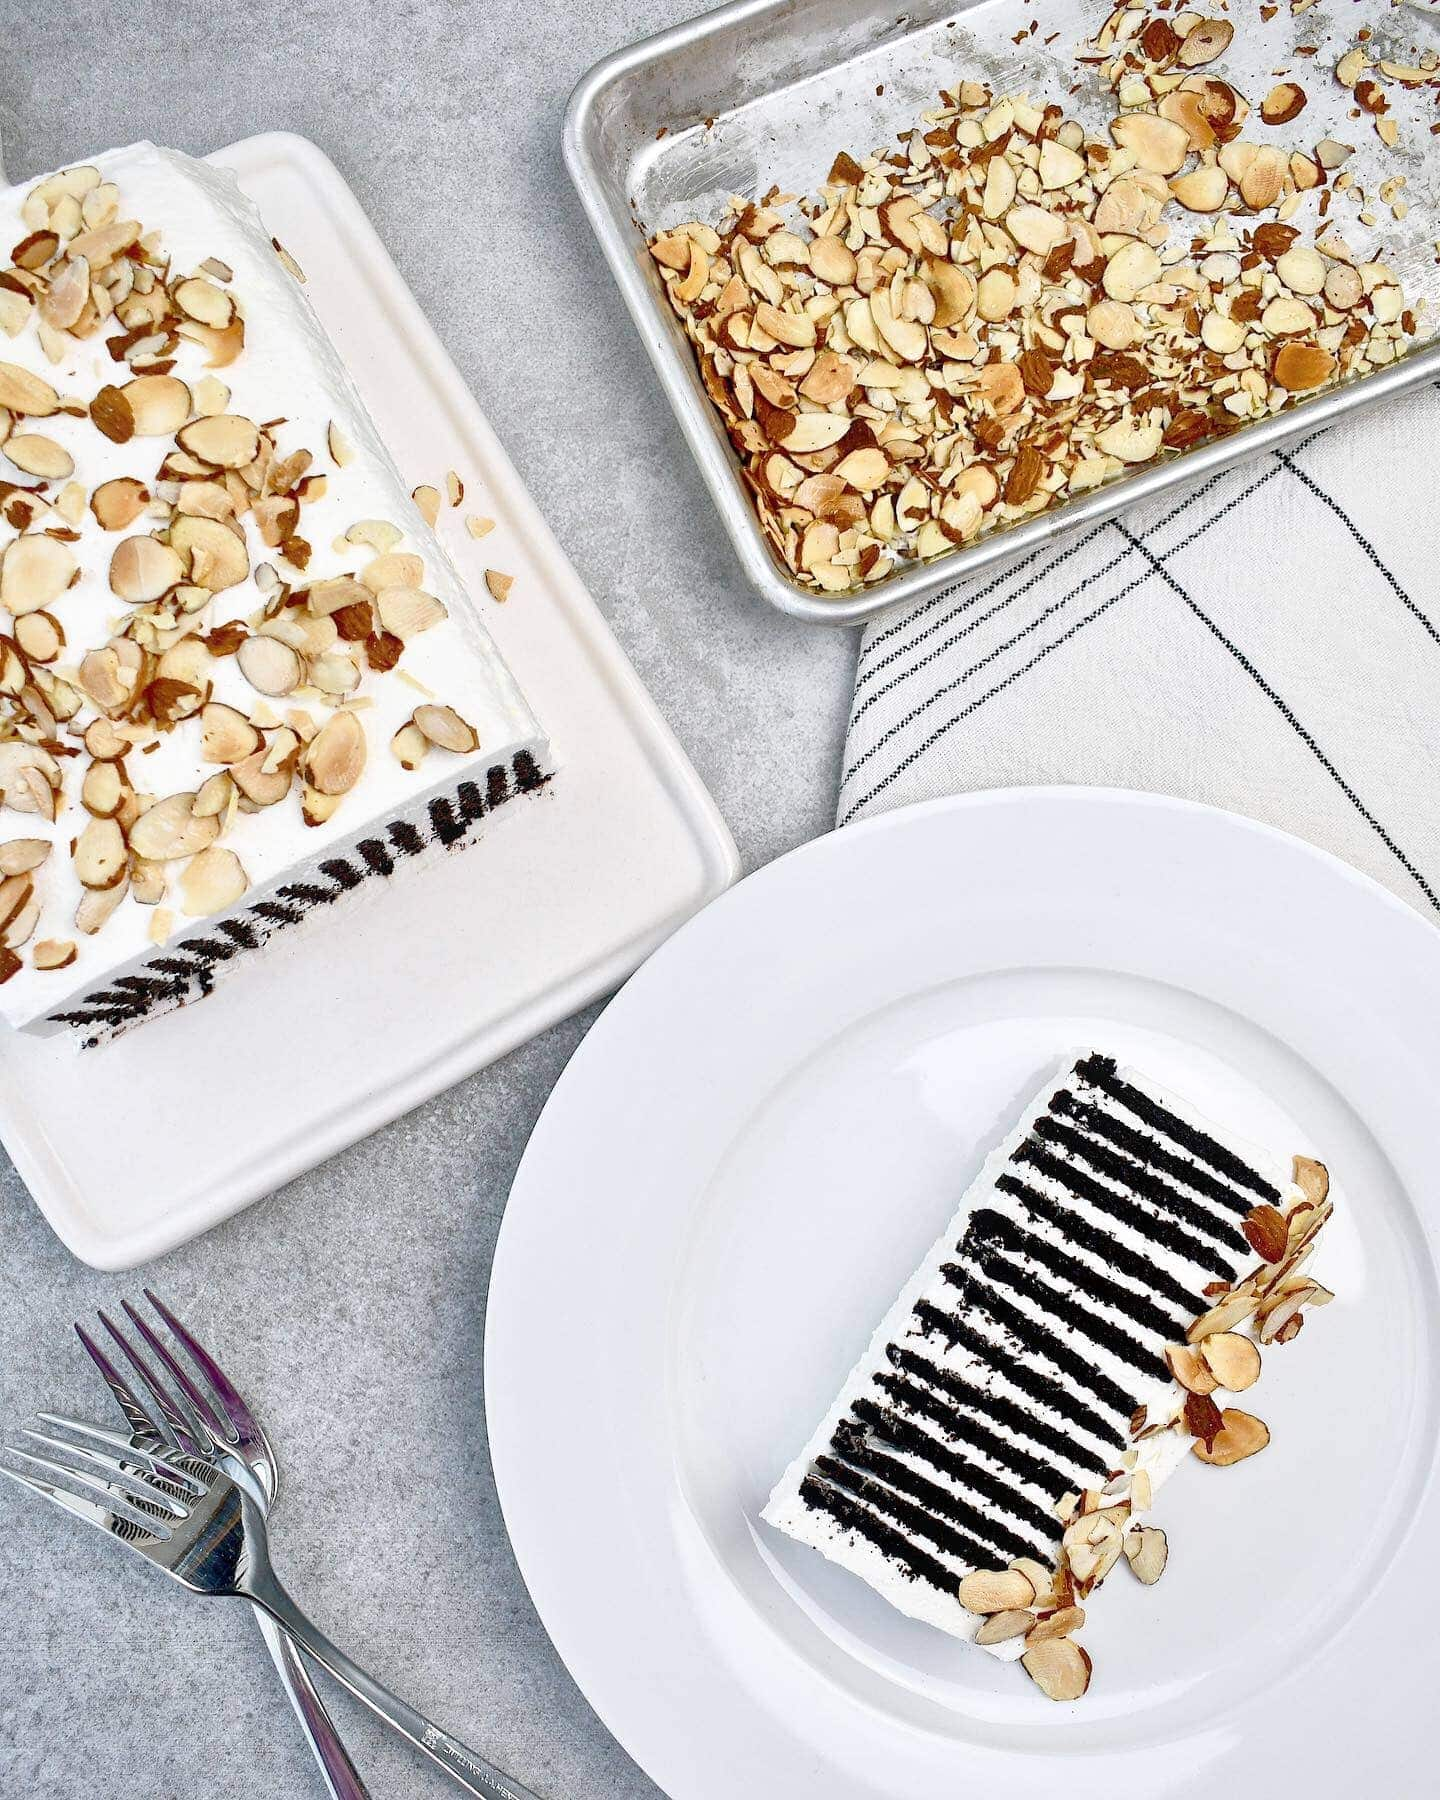 Chocolate Wafer Ice Box Cake, with a slice on a plate, an toasted almond in the corner.